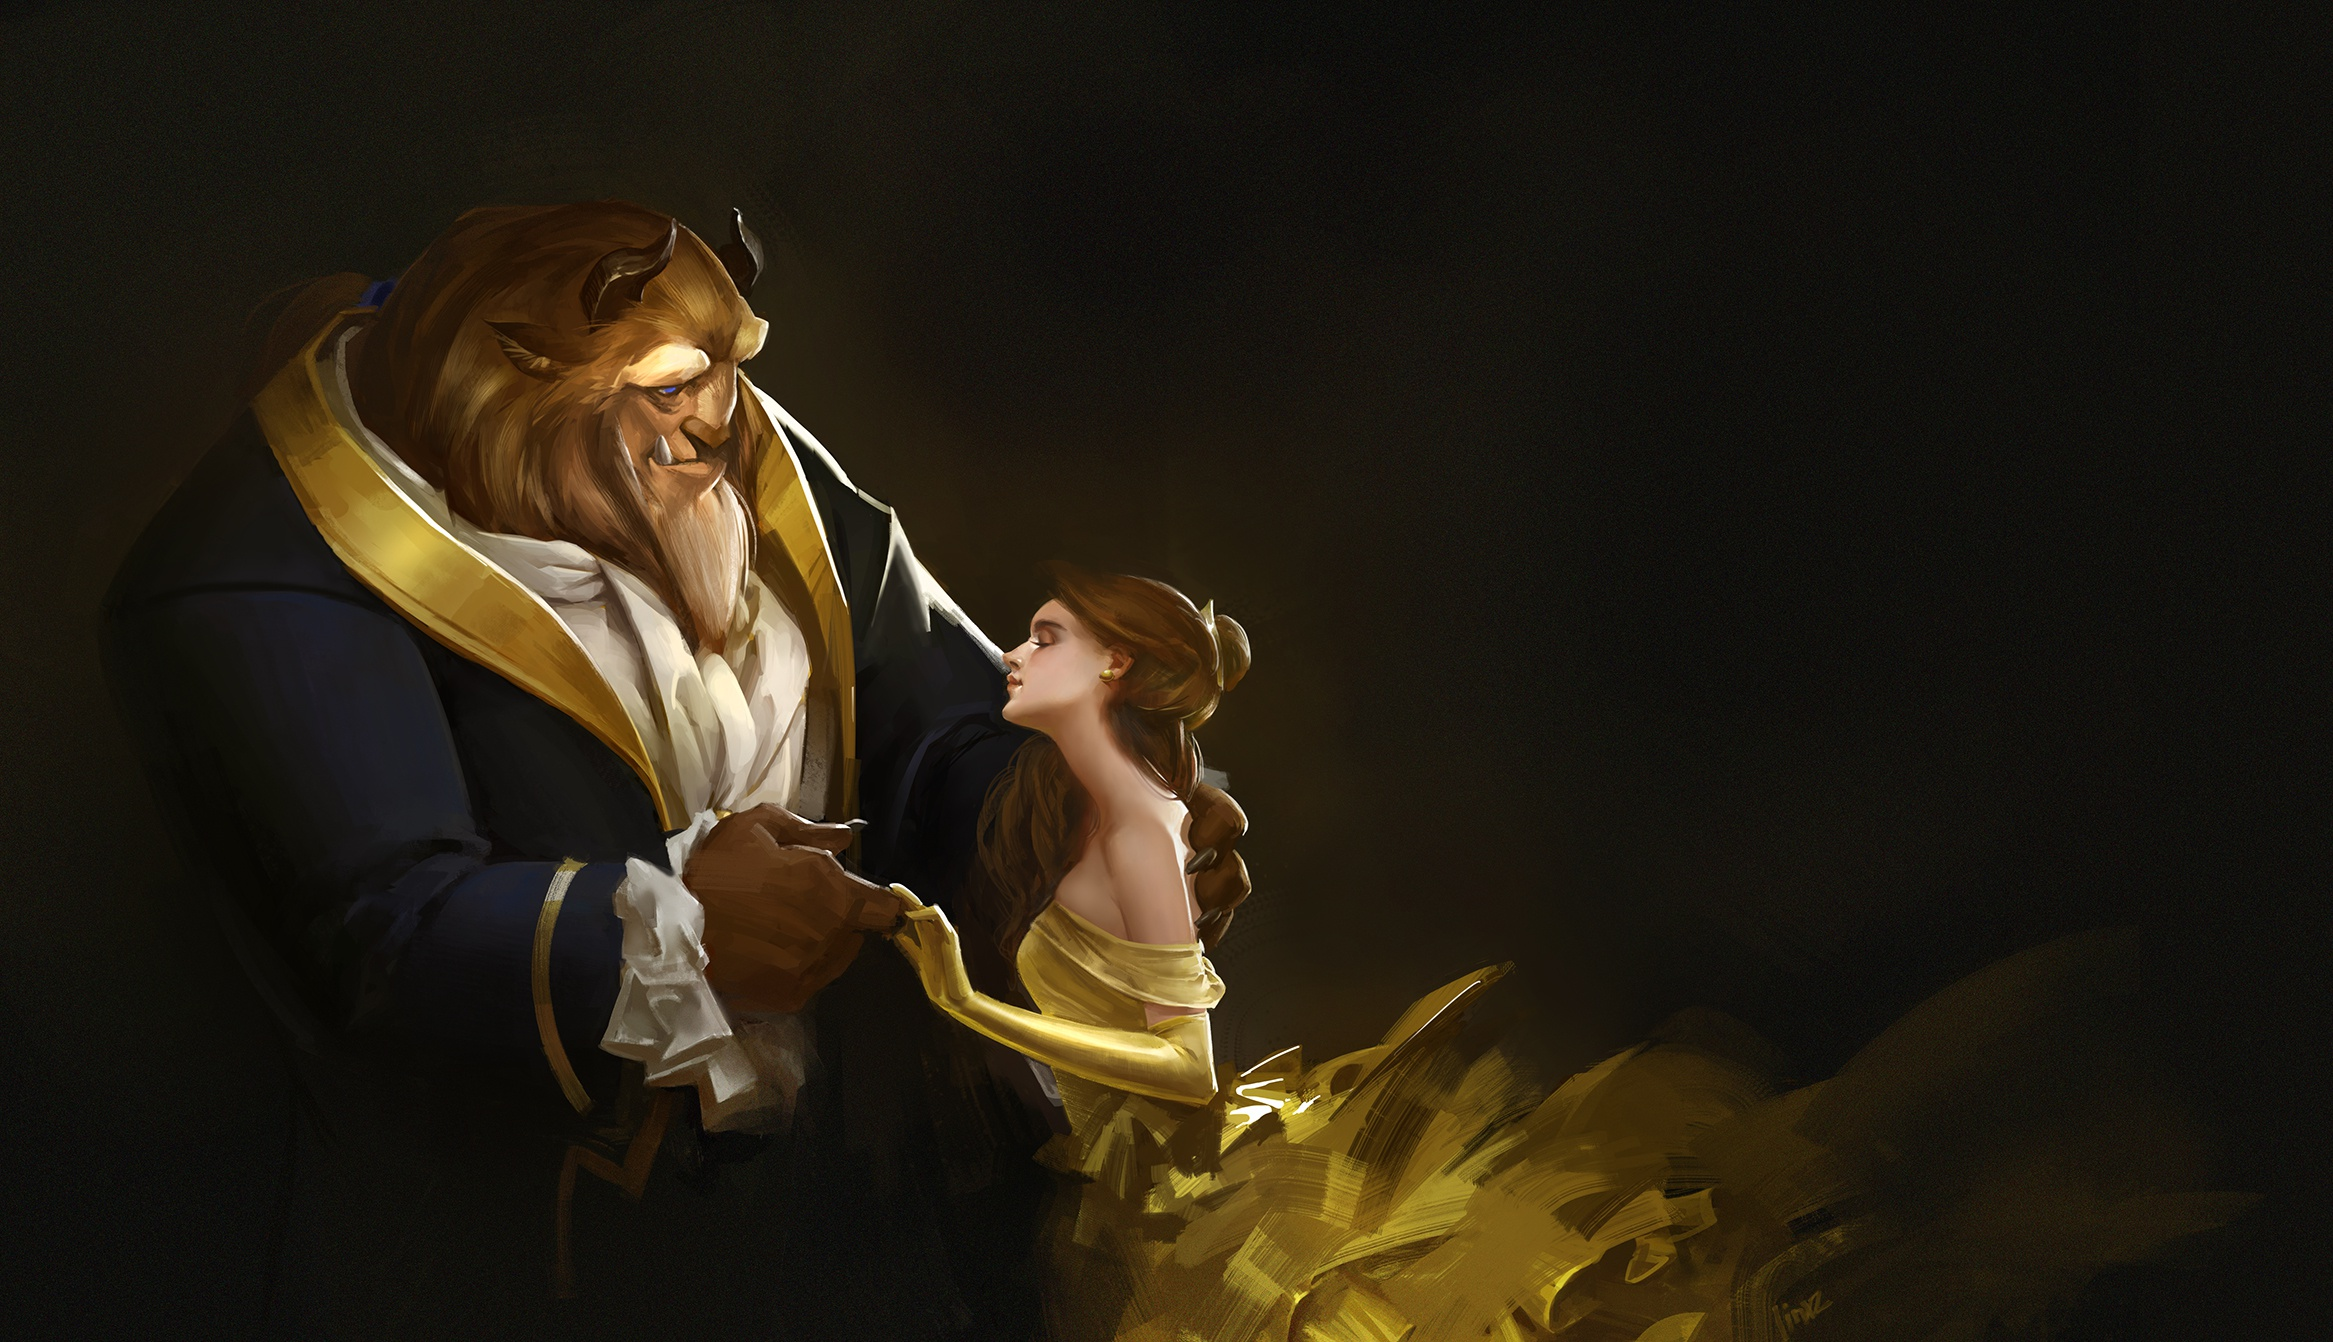 Beauty And The Beast Artwork, HD Movies, 4k Wallpapers